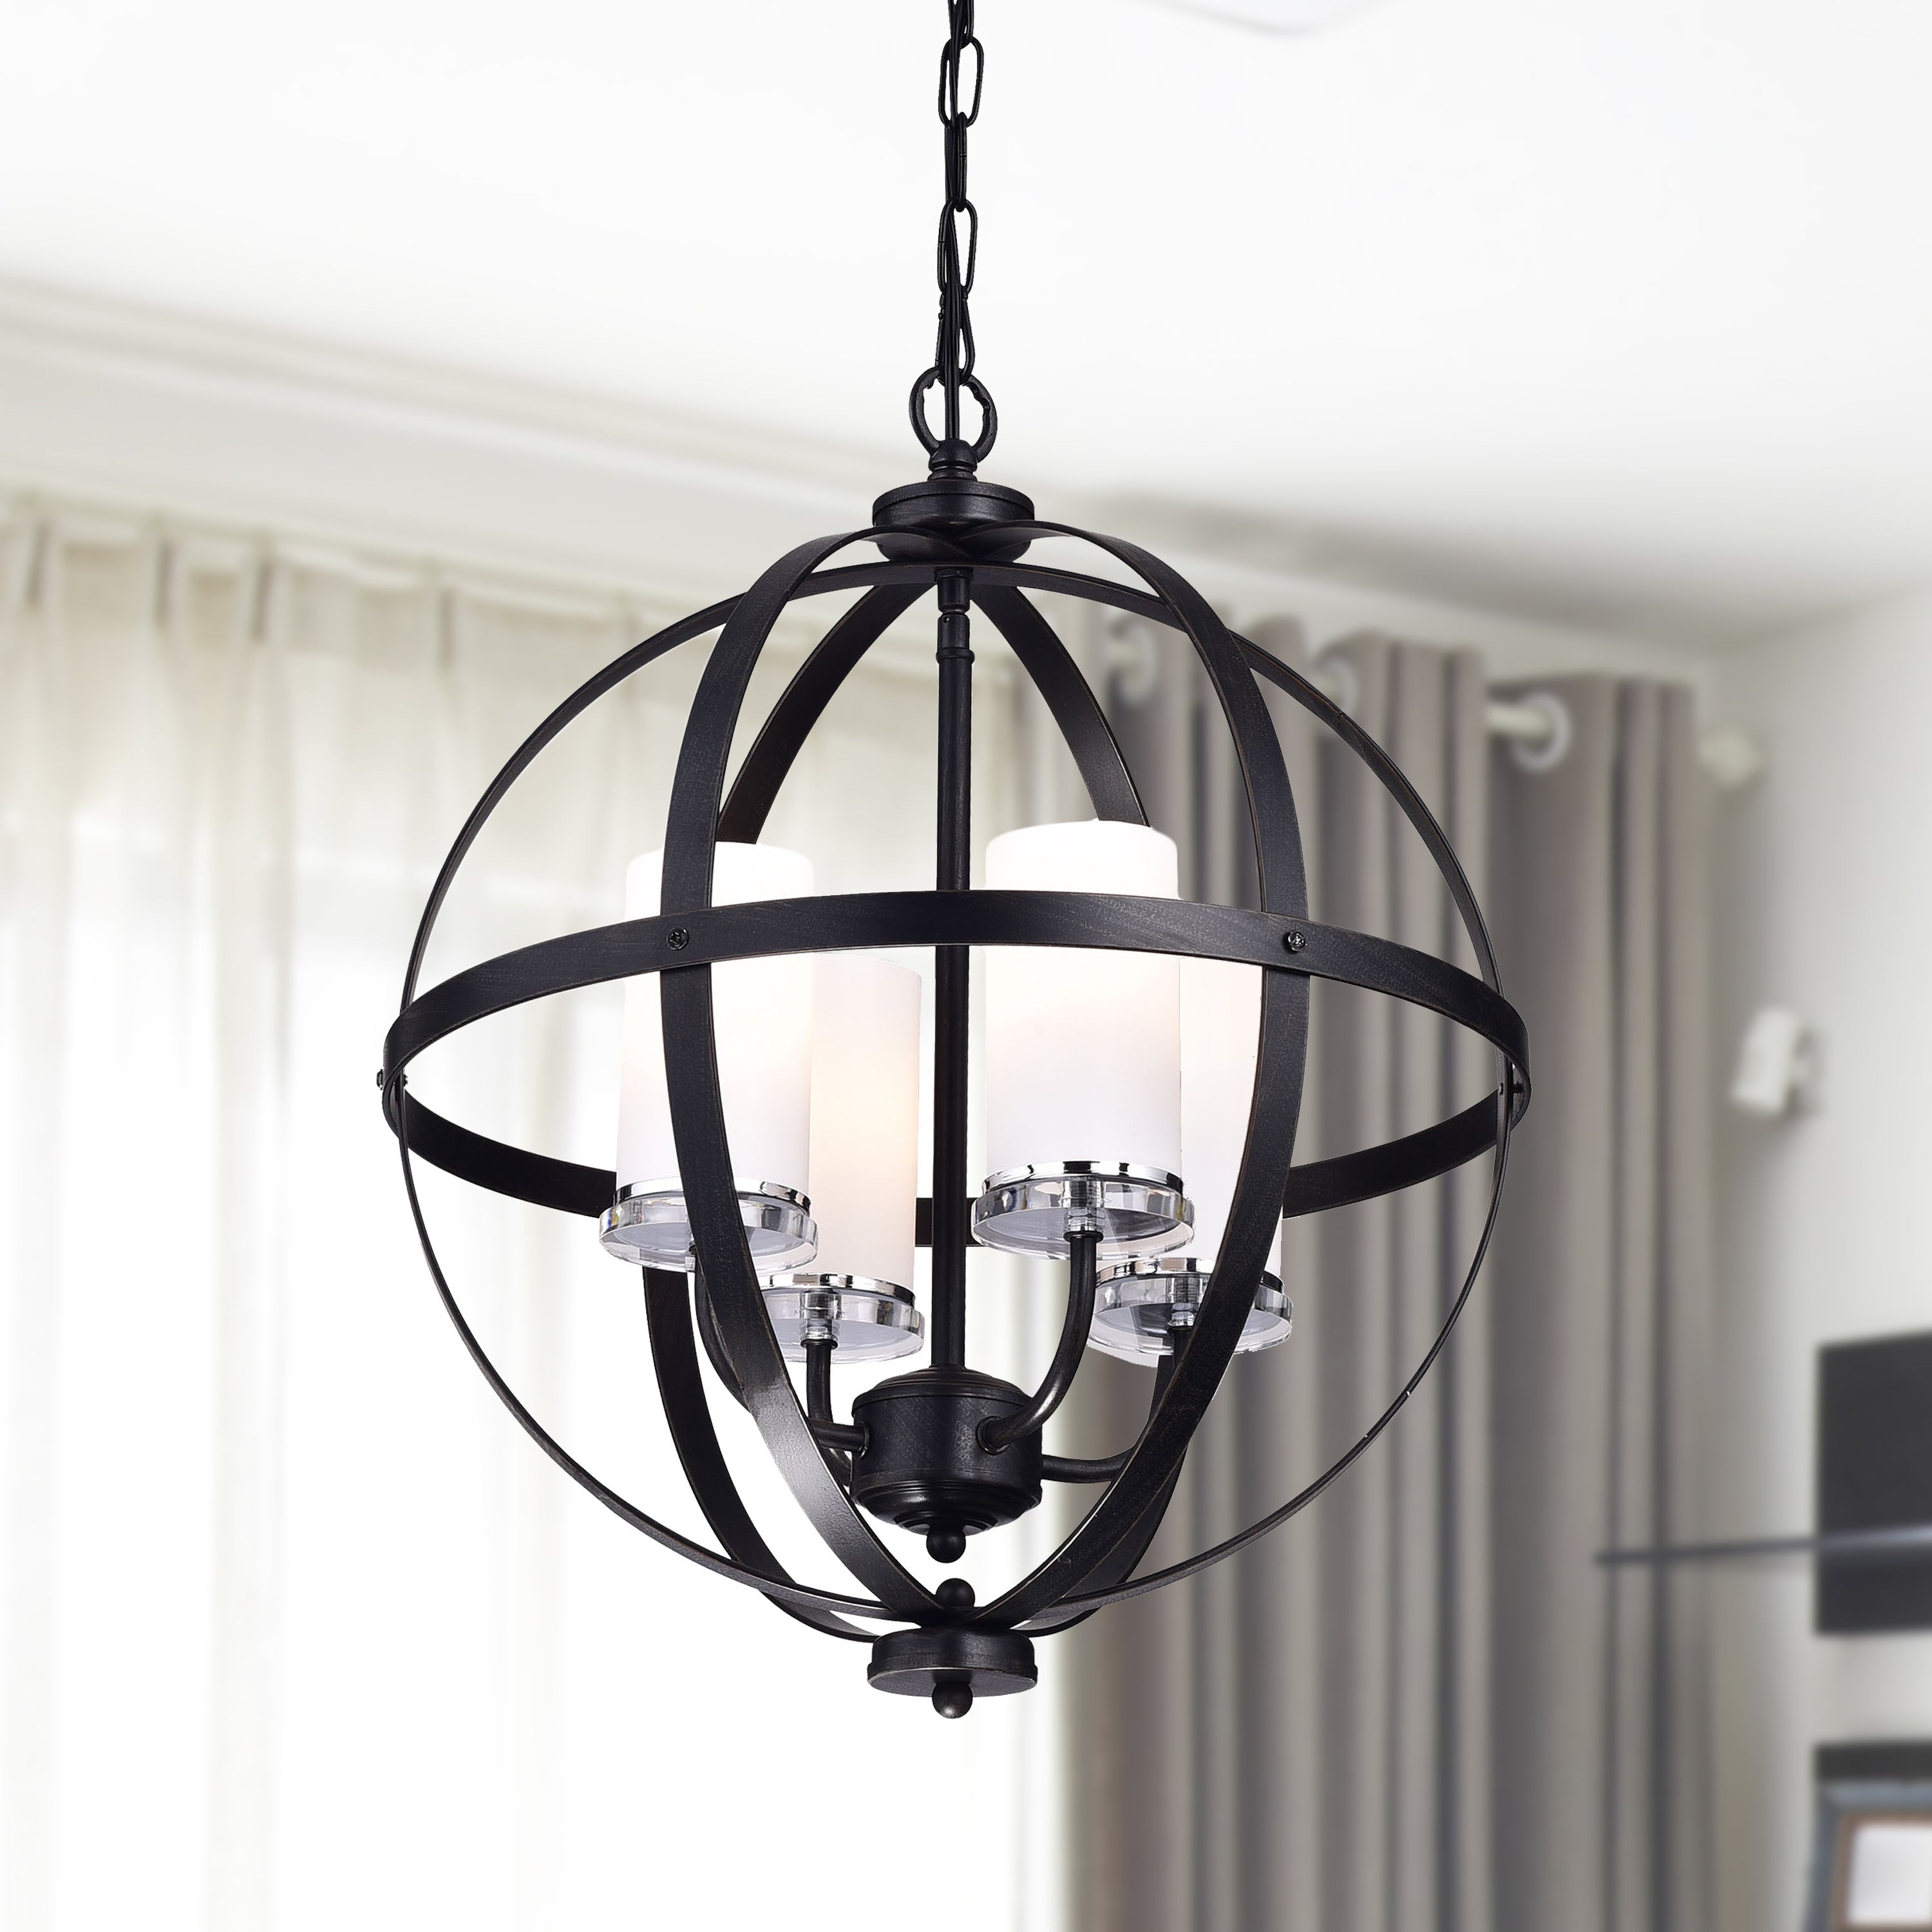 Donna 4 Light Globe Chandeliers With Regard To Favorite Benita Antique Black Iron Orb Chandelier With Glass Globe (View 15 of 25)